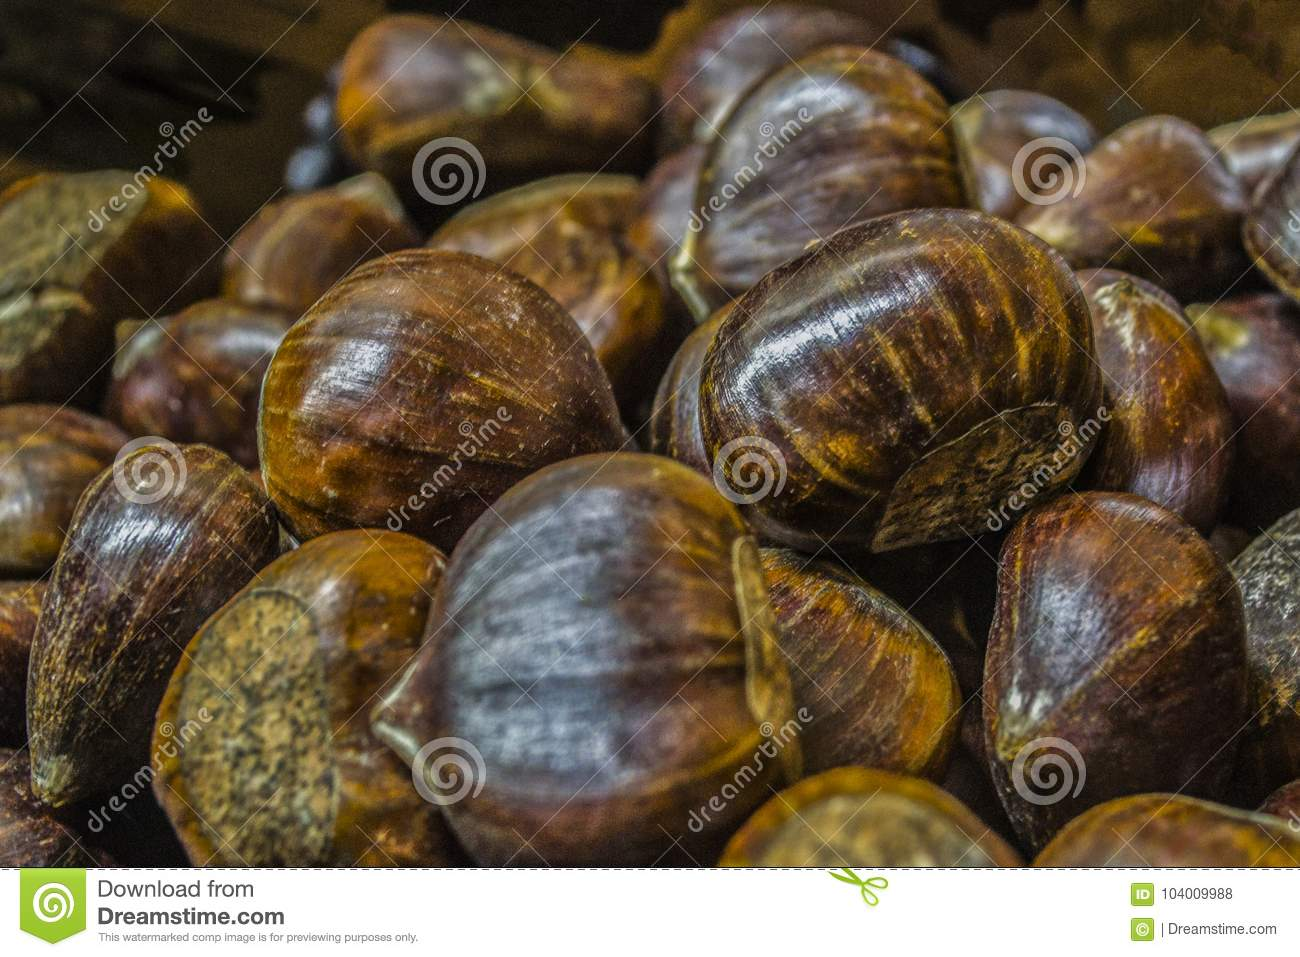 A lot of edible chestnuts